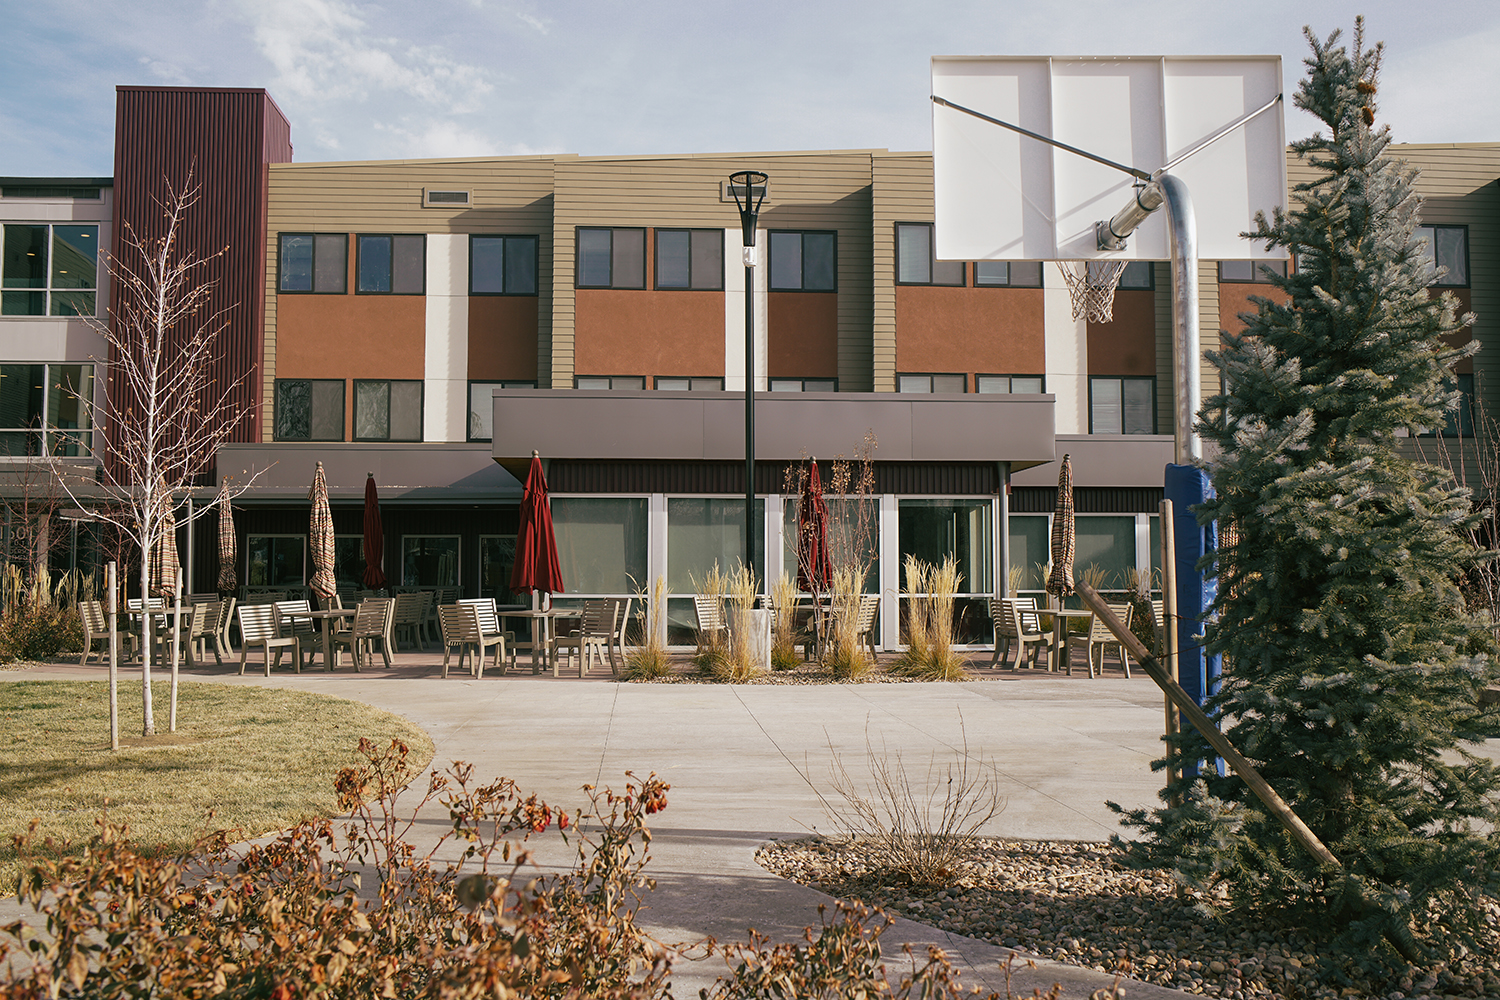 The 60-unit Sanderson Apartments, operated by Mental Health Center of Denver, opened in south Denver in August 2017.